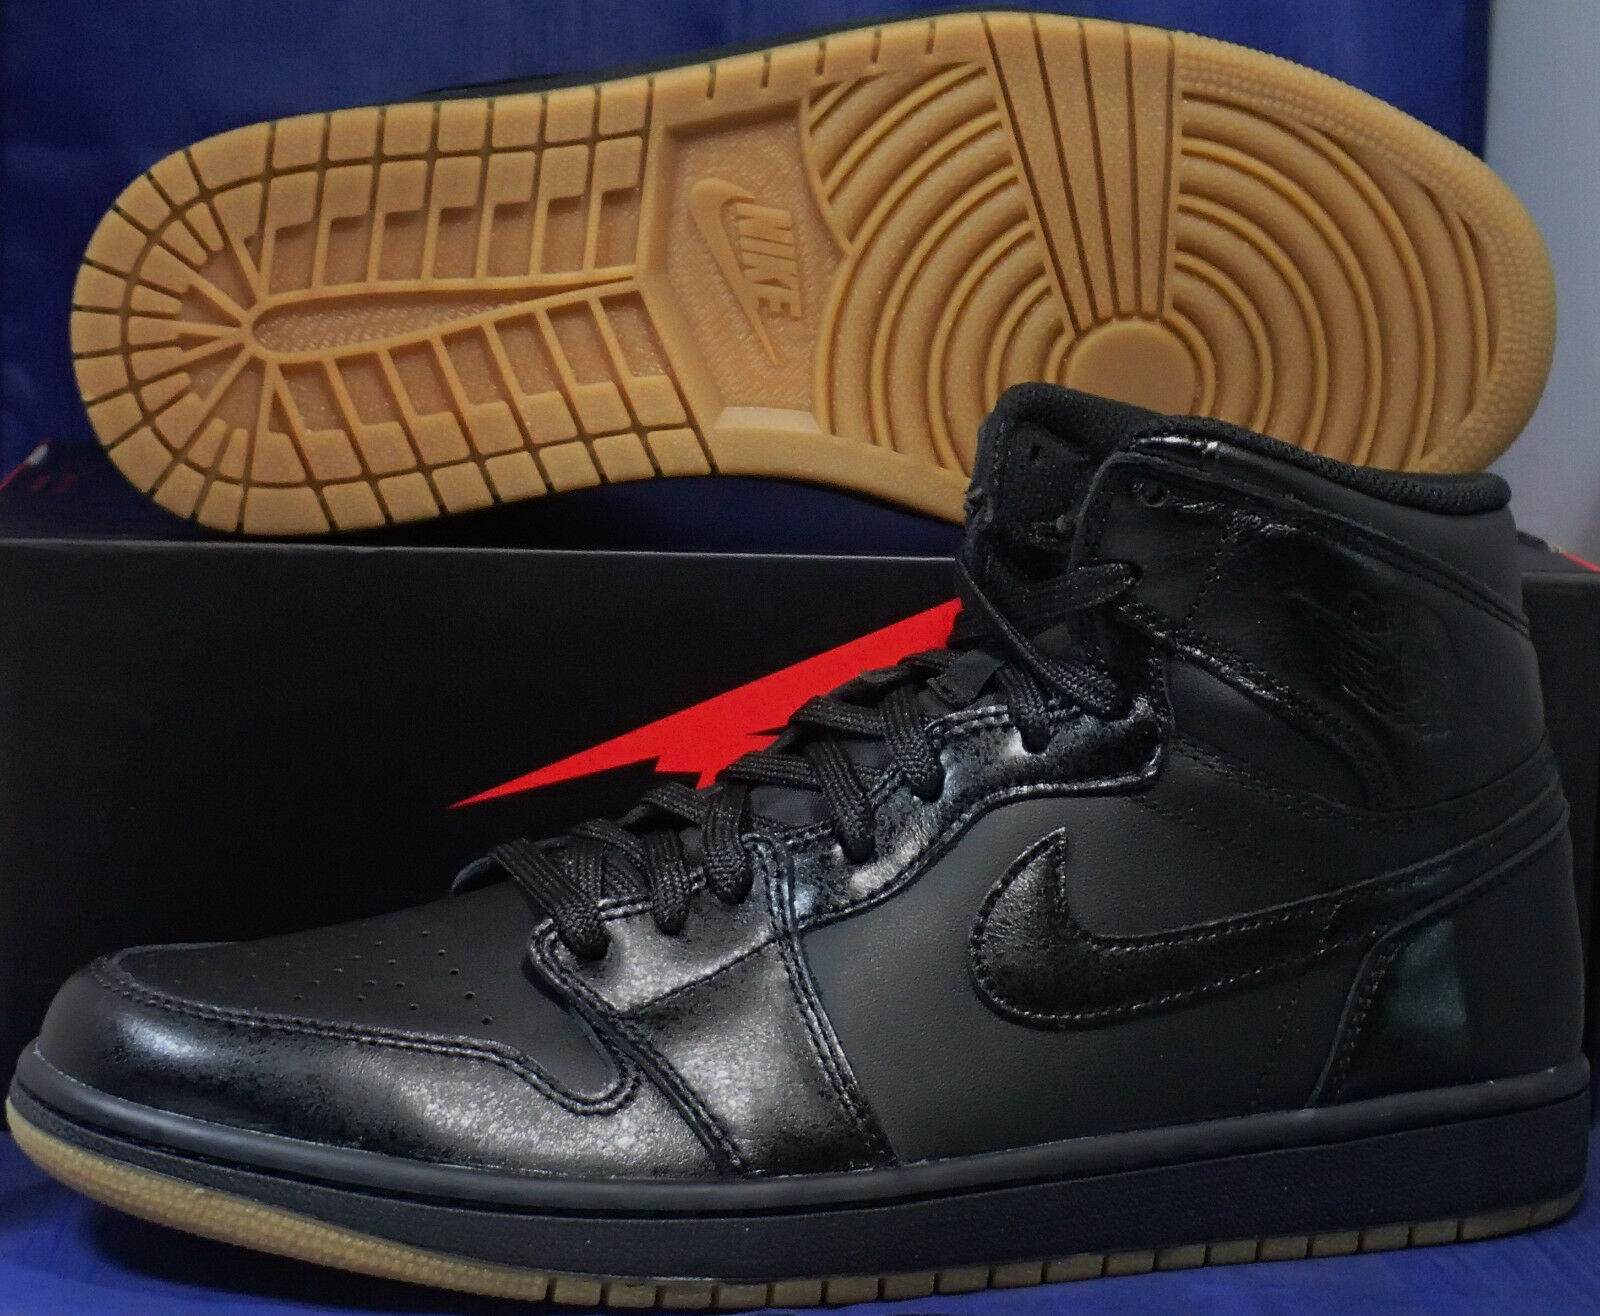 Nike Air Jordan 1 Retro High OG Black Gum Light Brown SZ 8 ( 555088-020 )